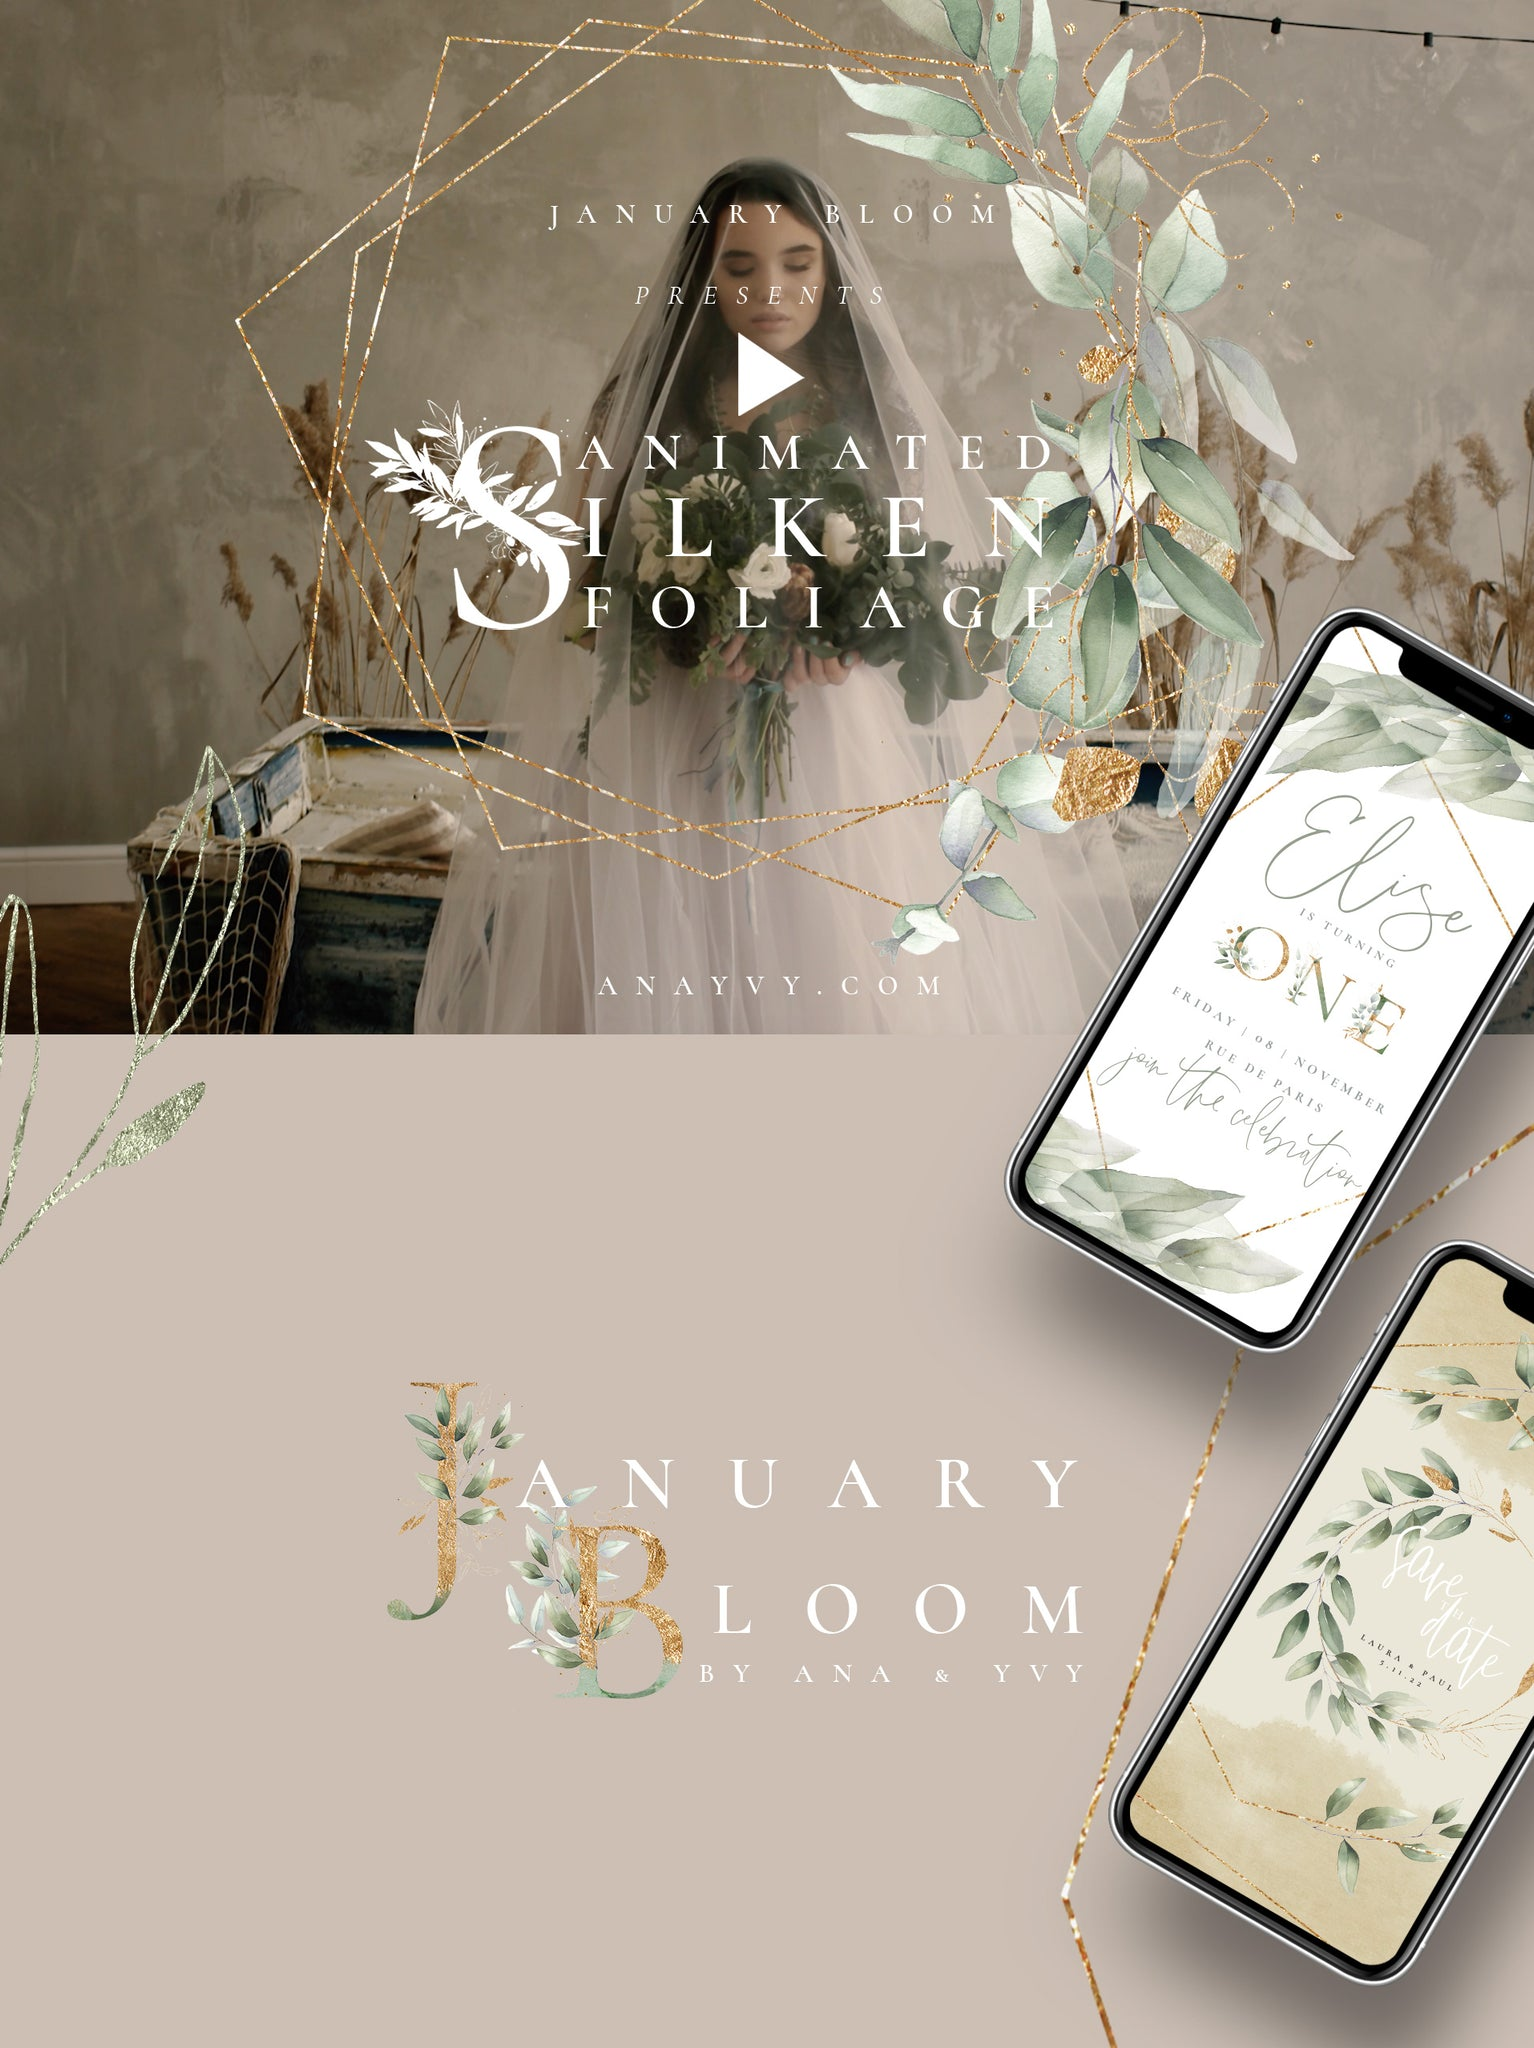 January Bloom | Animated Watercolor Foliage & Gold - ANA & YVY